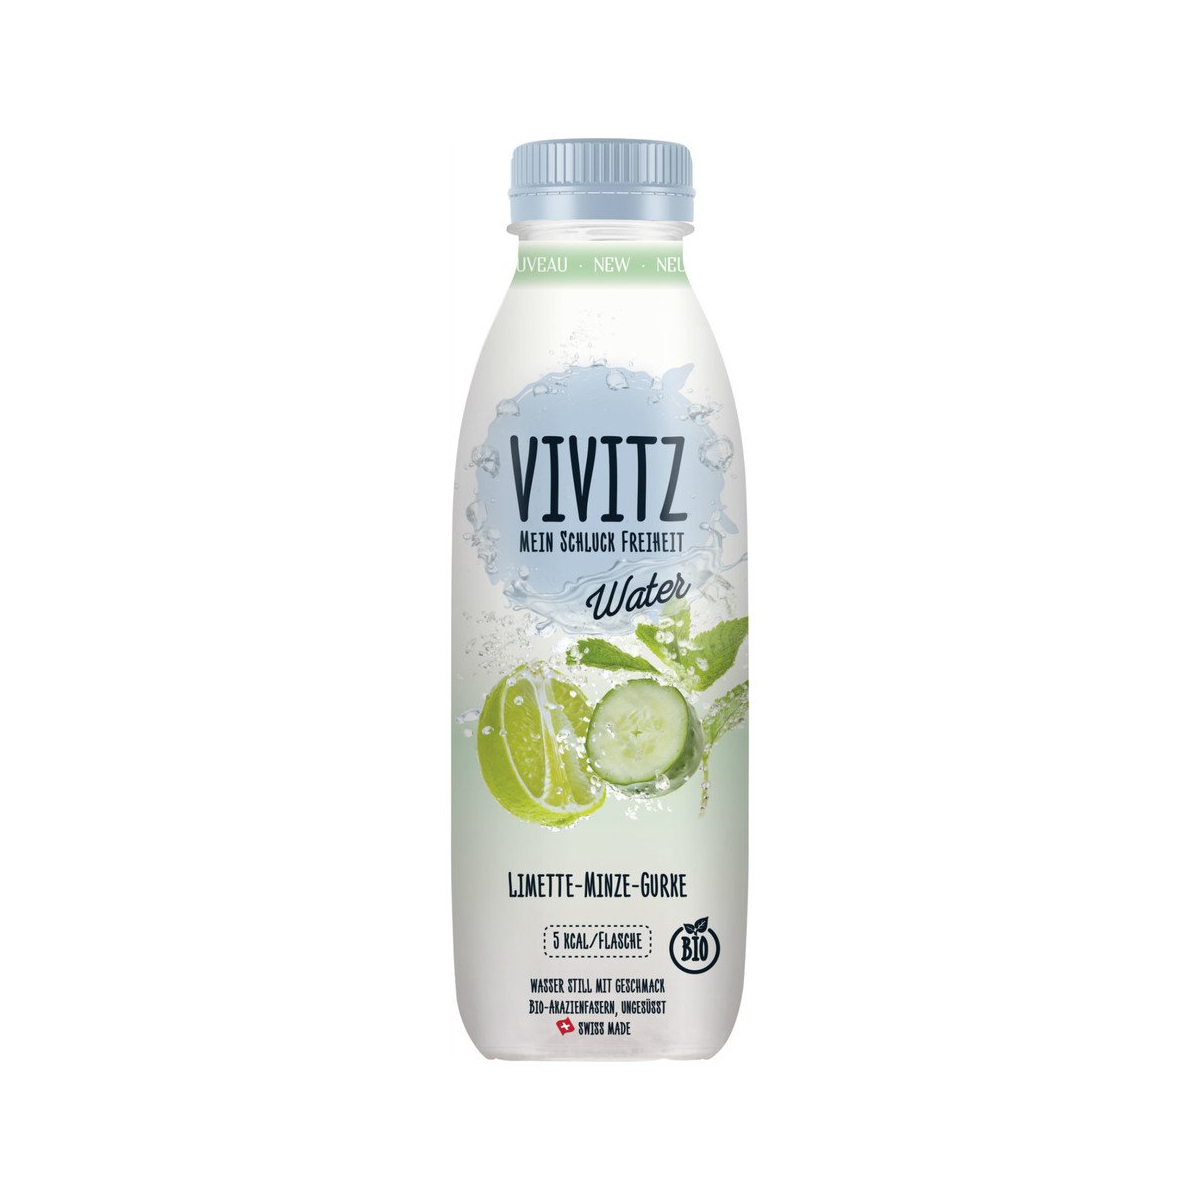 Vivitz Water Limette-Minze